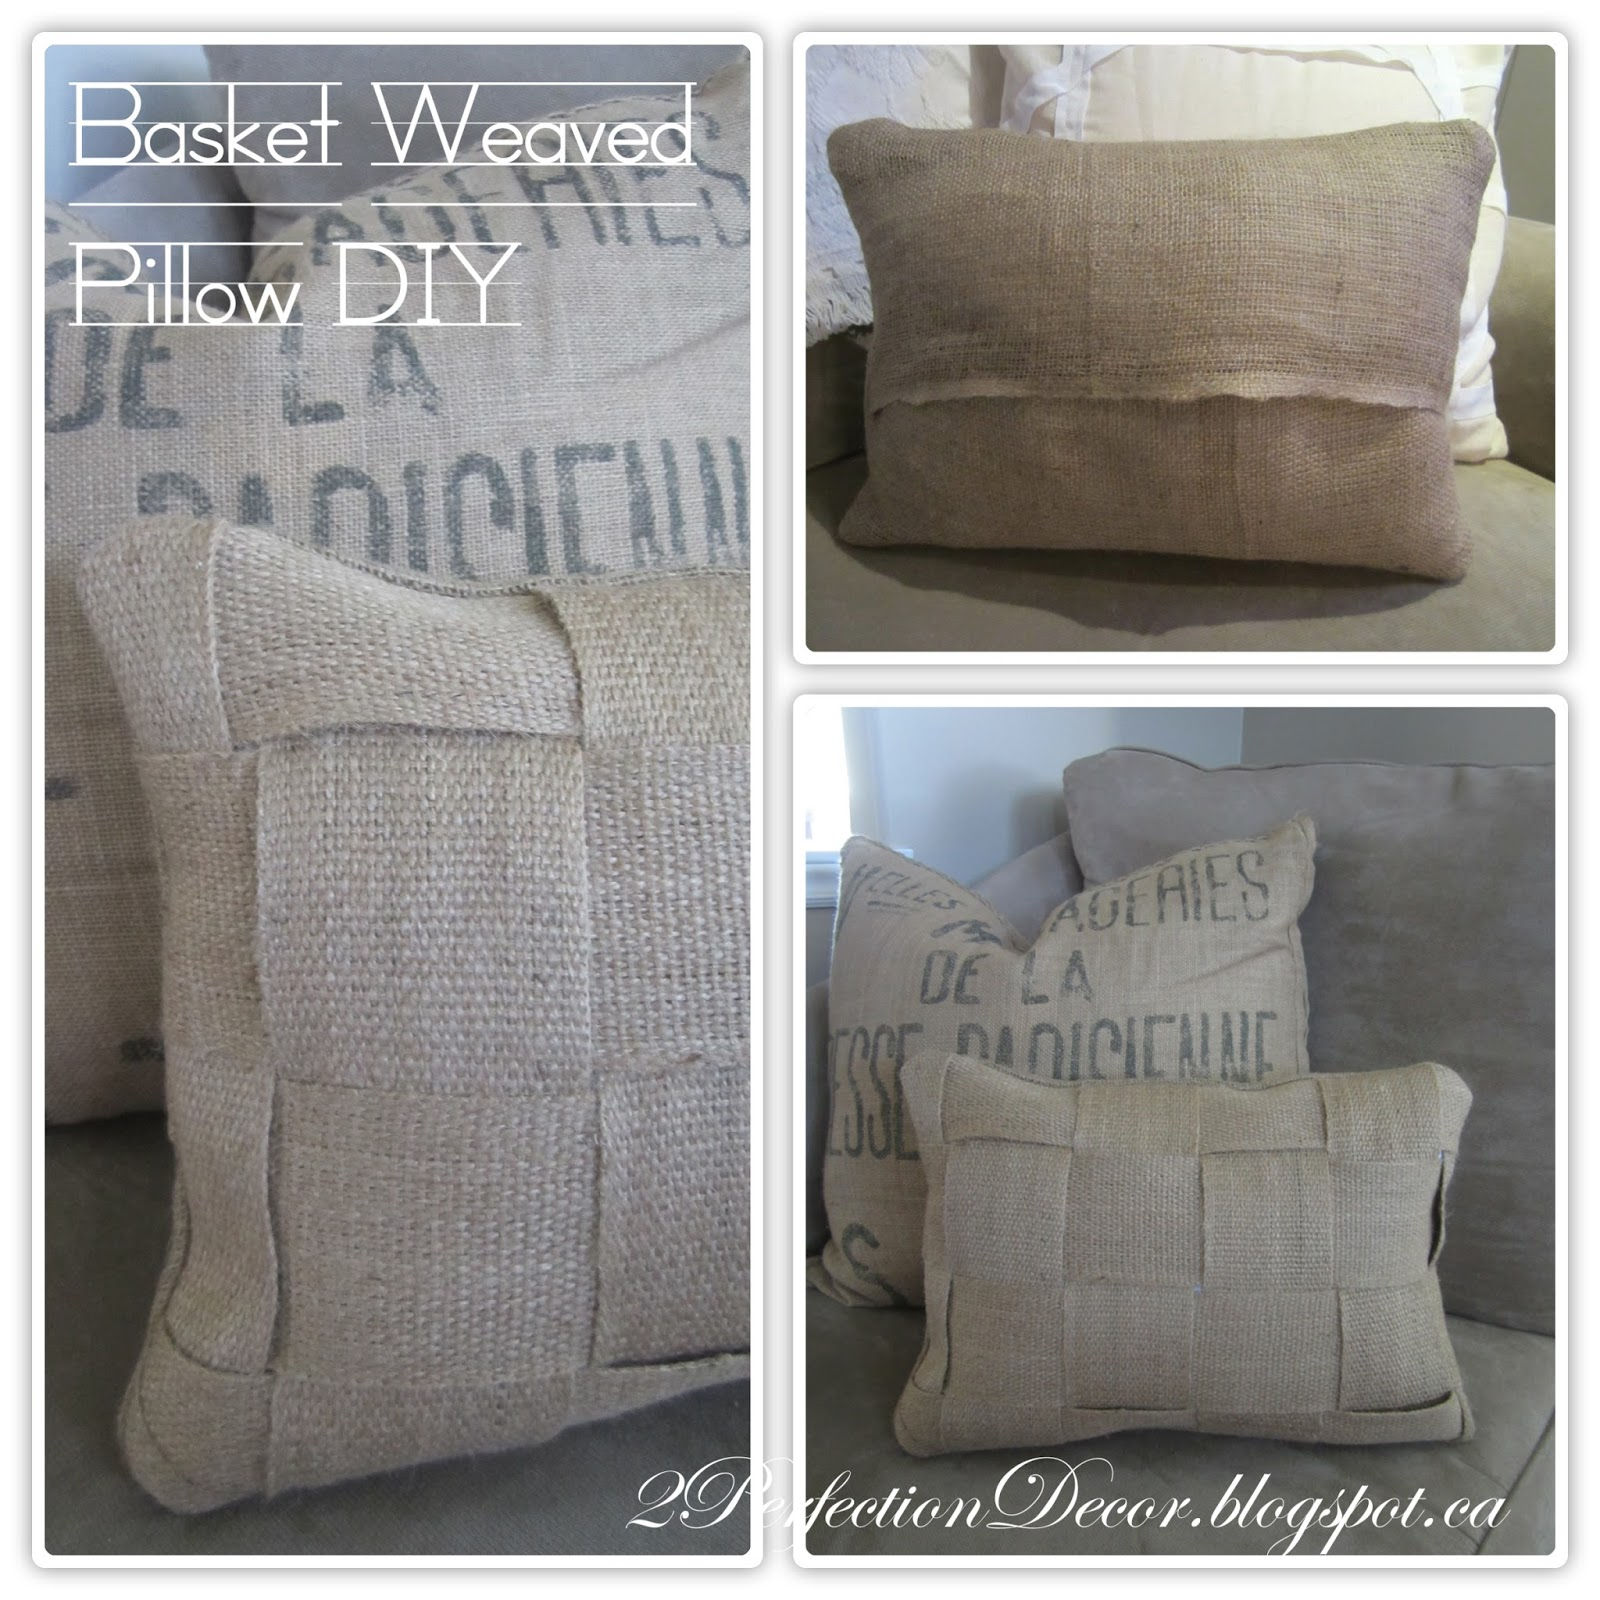 2Perfection Decor DIY Basket Weaved Lumbar Pillow Cover